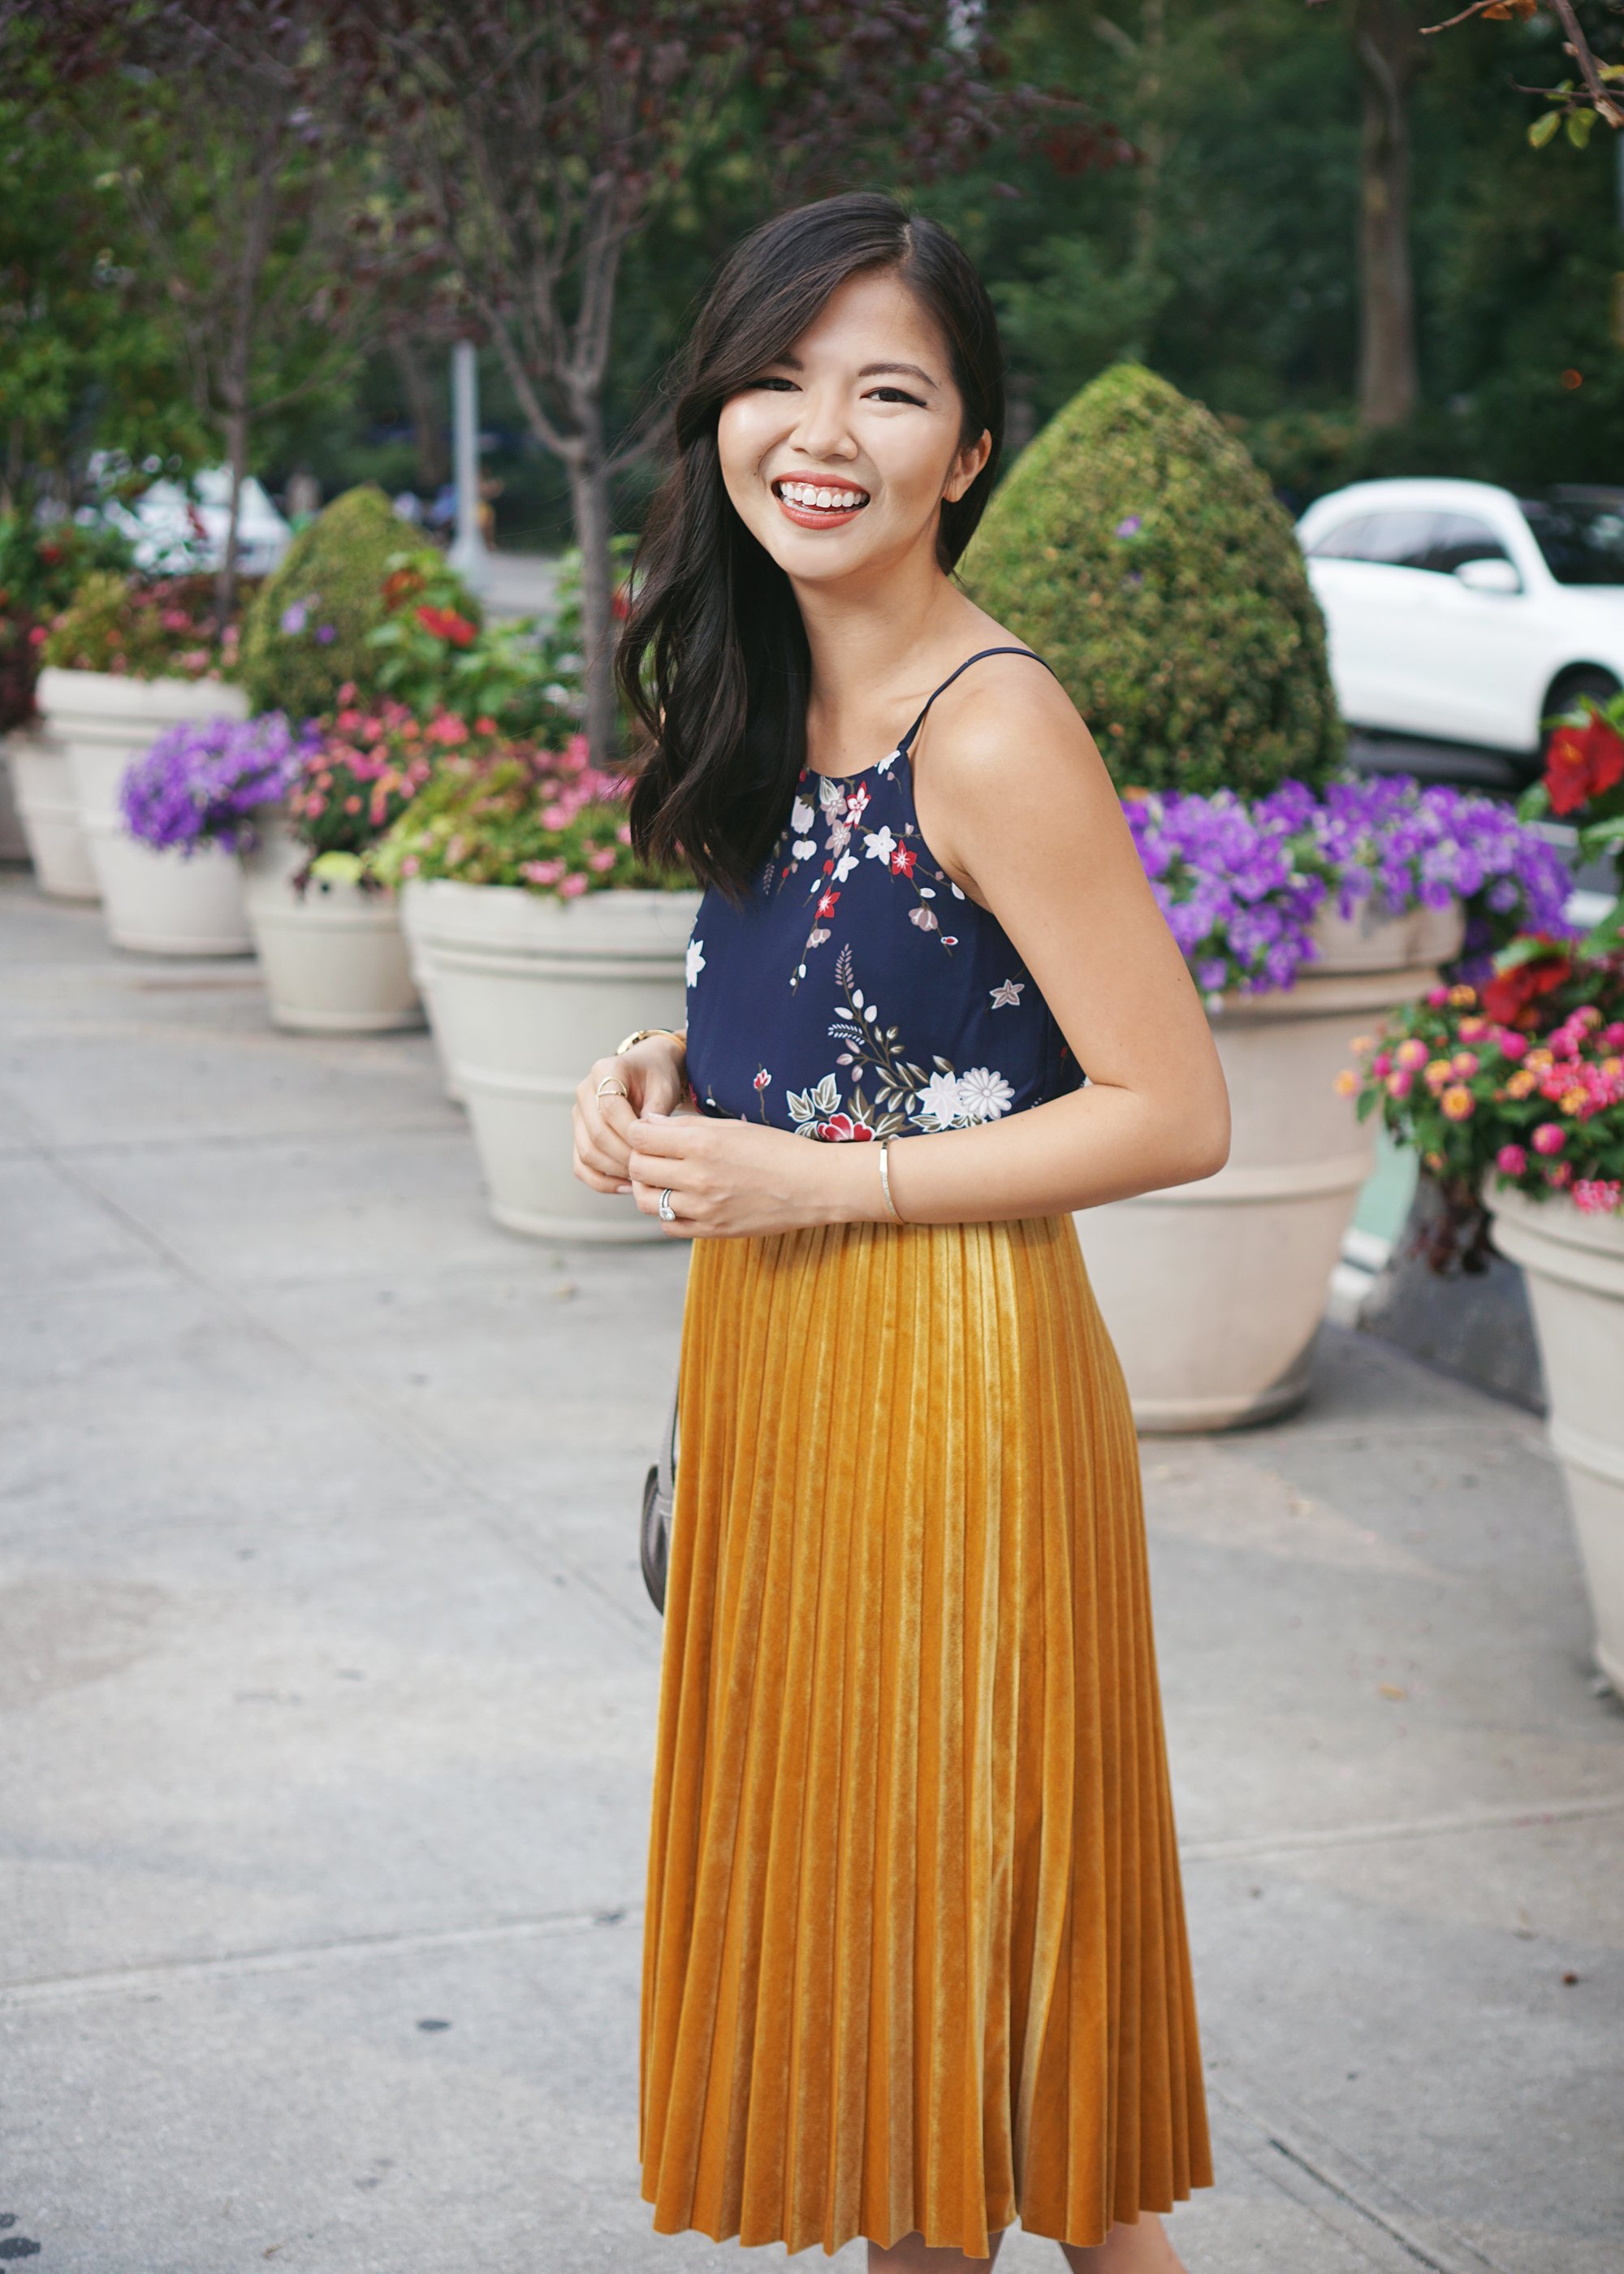 How to Wear a Skirt Over a Dress